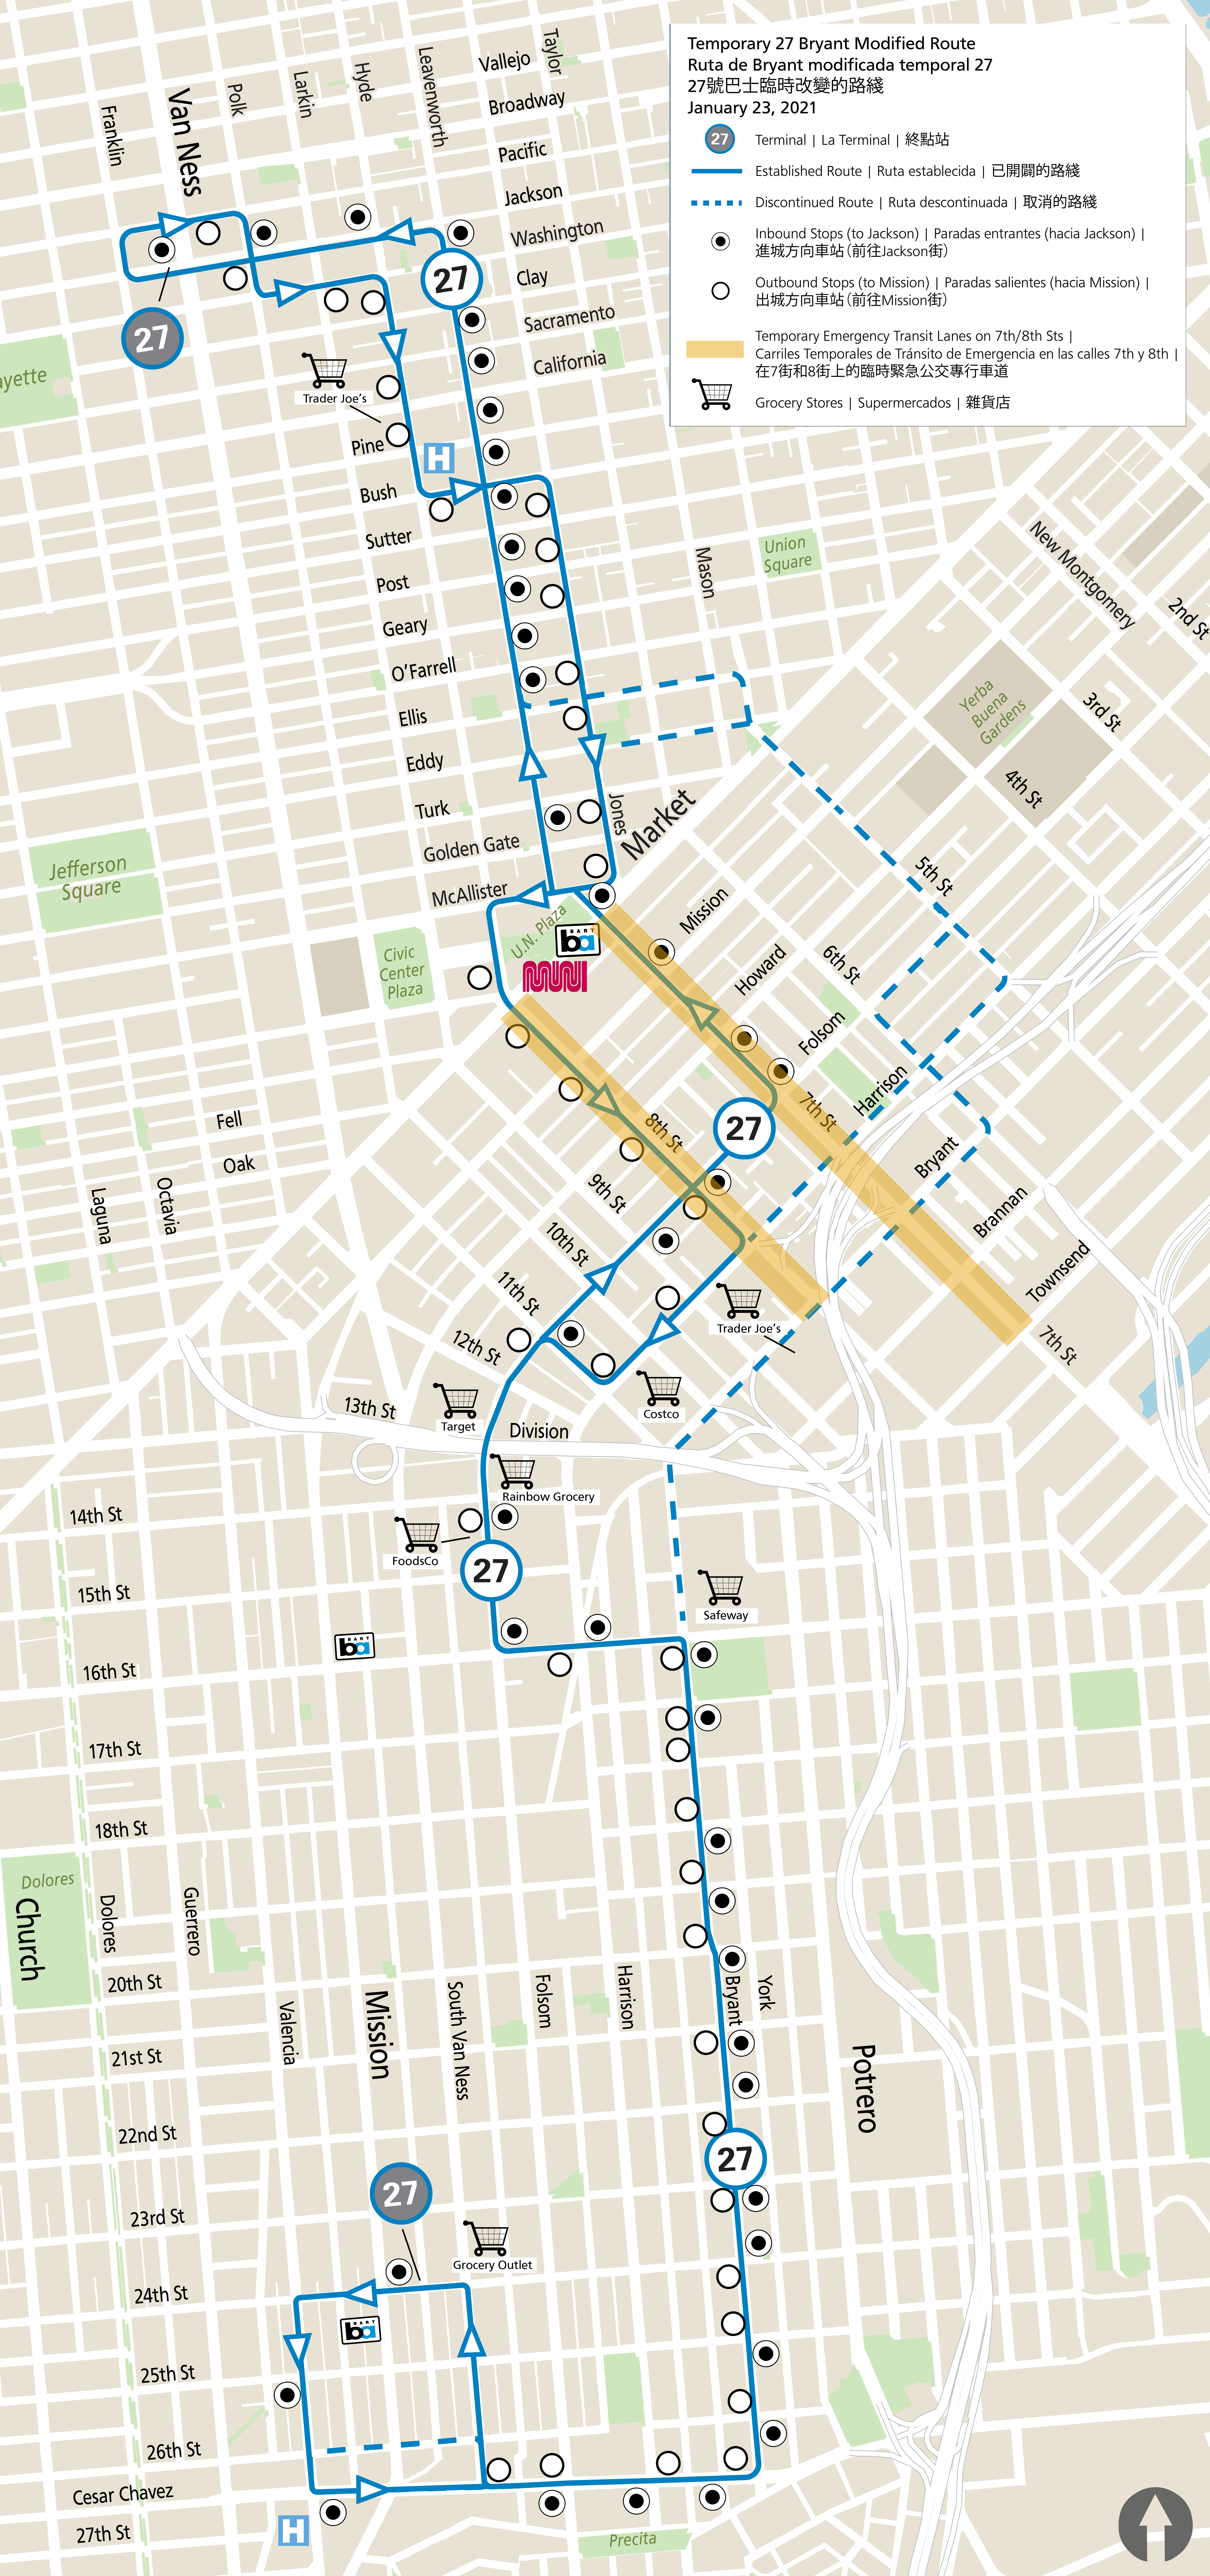 Map showing new route, old route and transit lanes for the 27 Bryant in SoMa.